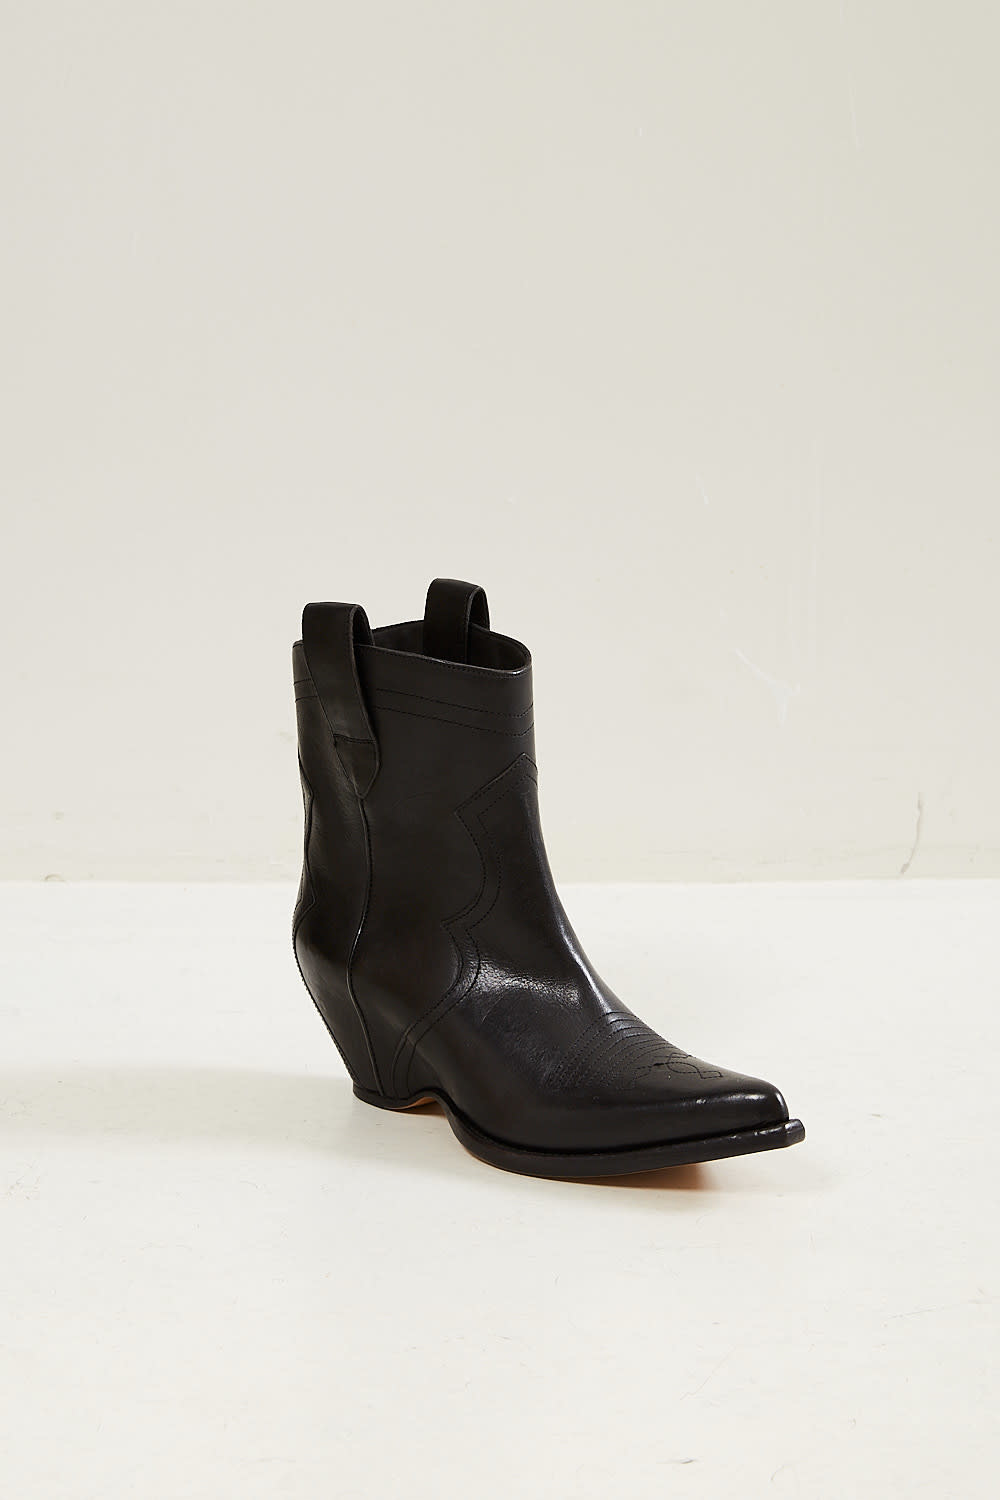 Maison Margiela Sendra vegetable leather boots